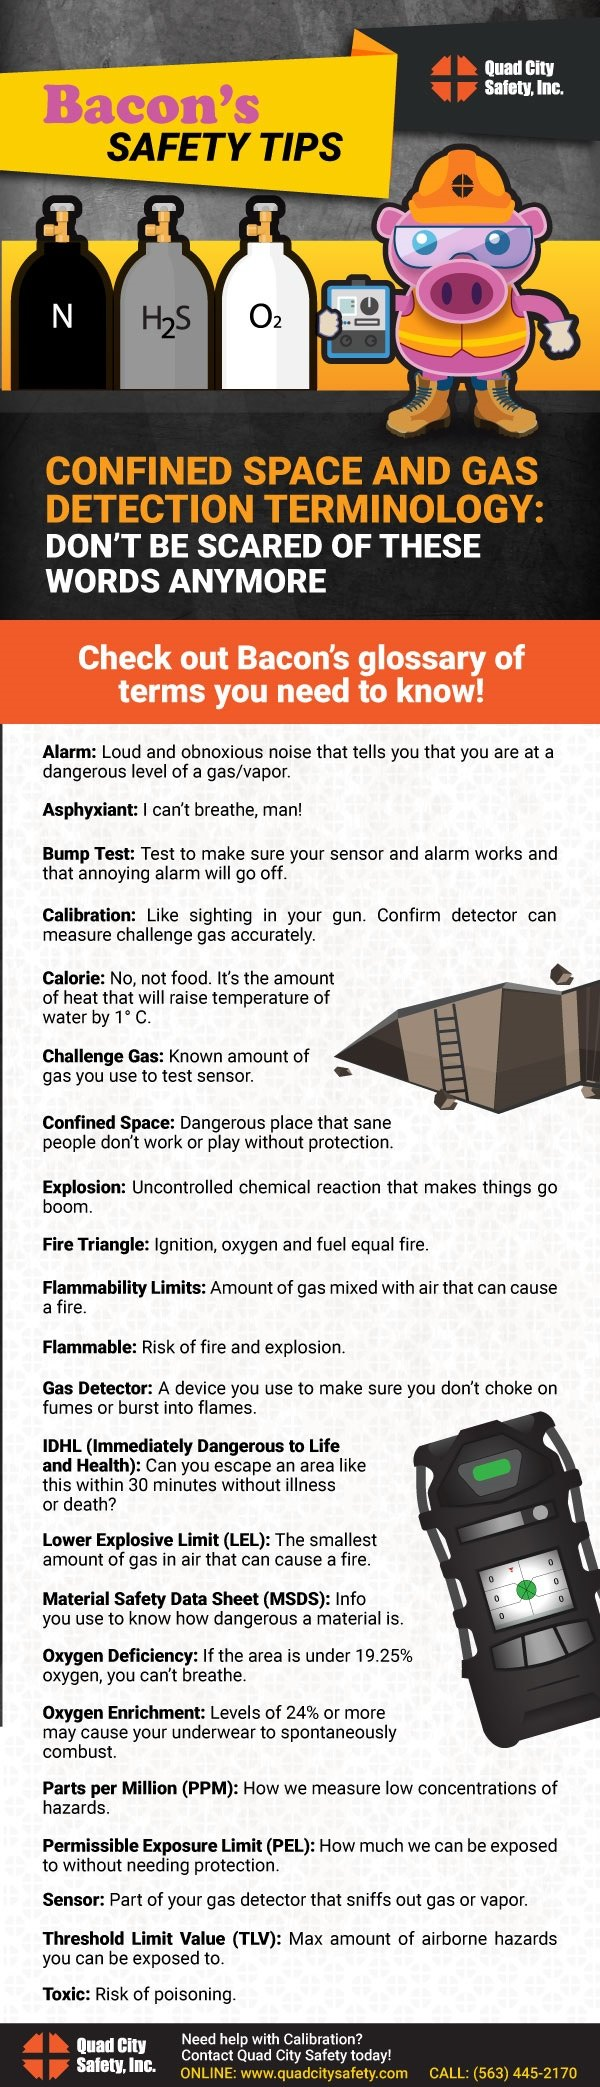 Bacon's Safety Tips Confined Space and Gas Detection Terminology: Don't be scared of these words anymore.